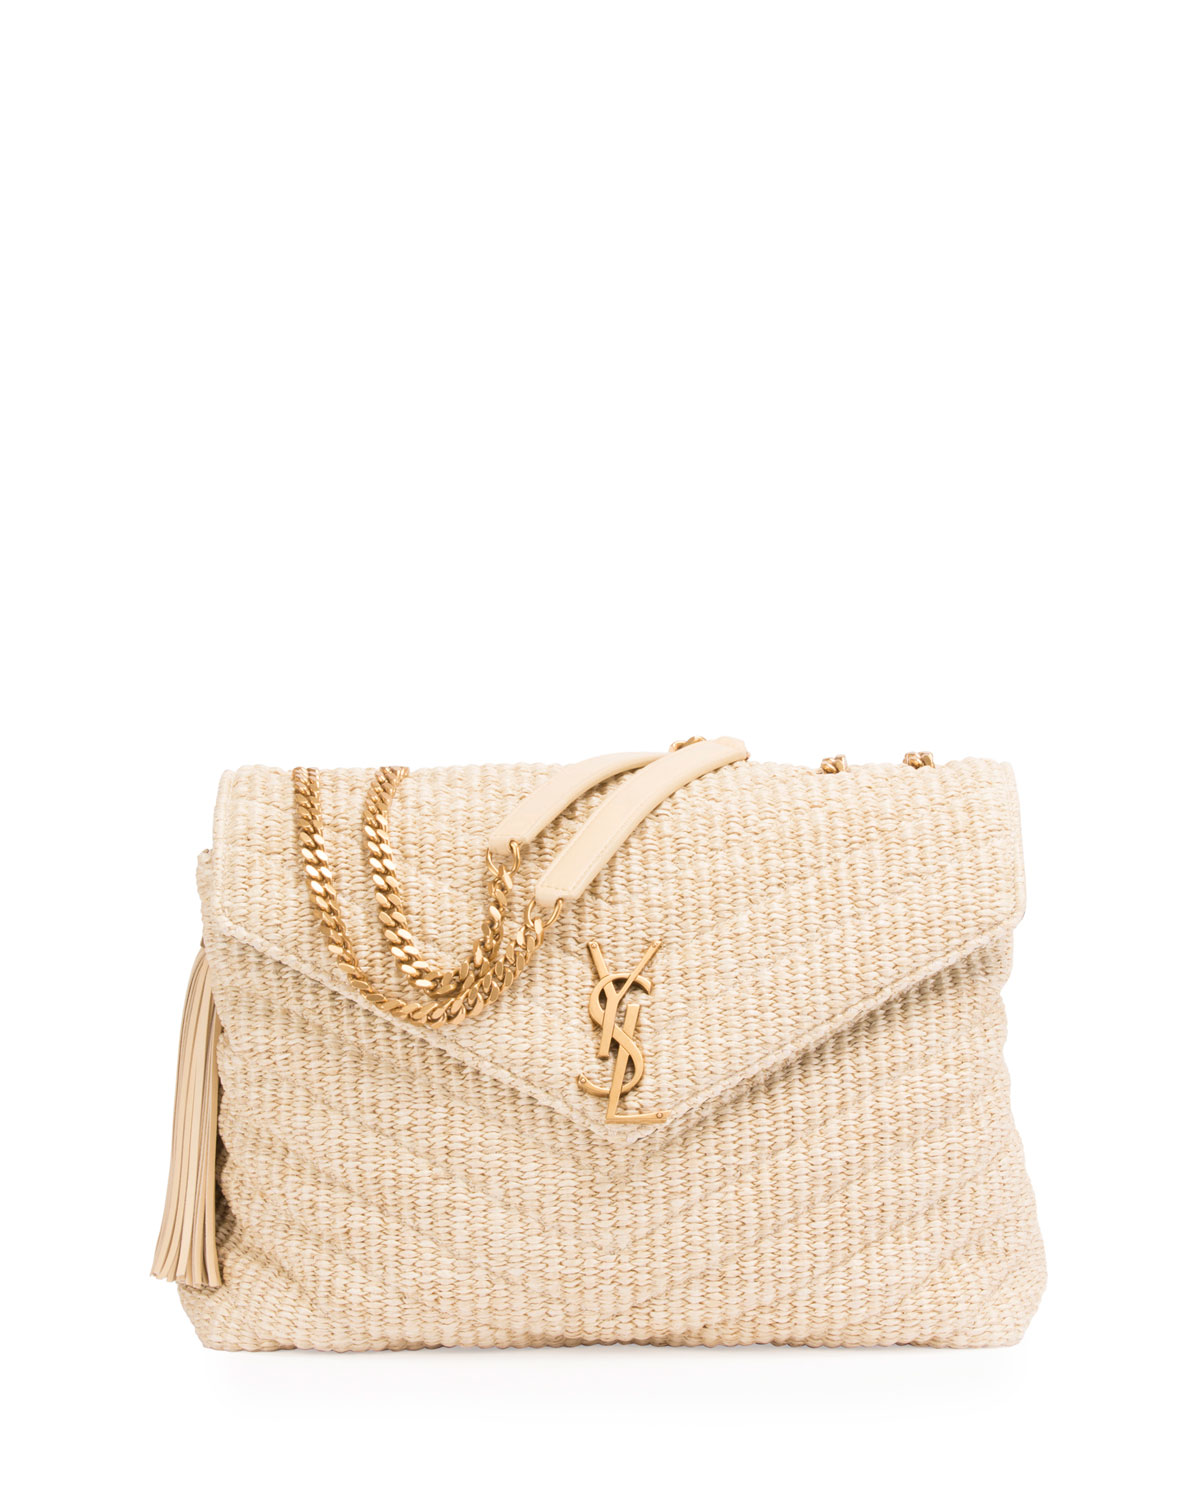 e5e5b9b6fe40 Saint LaurentMedium Soft Raffia Chain Shoulder Bag